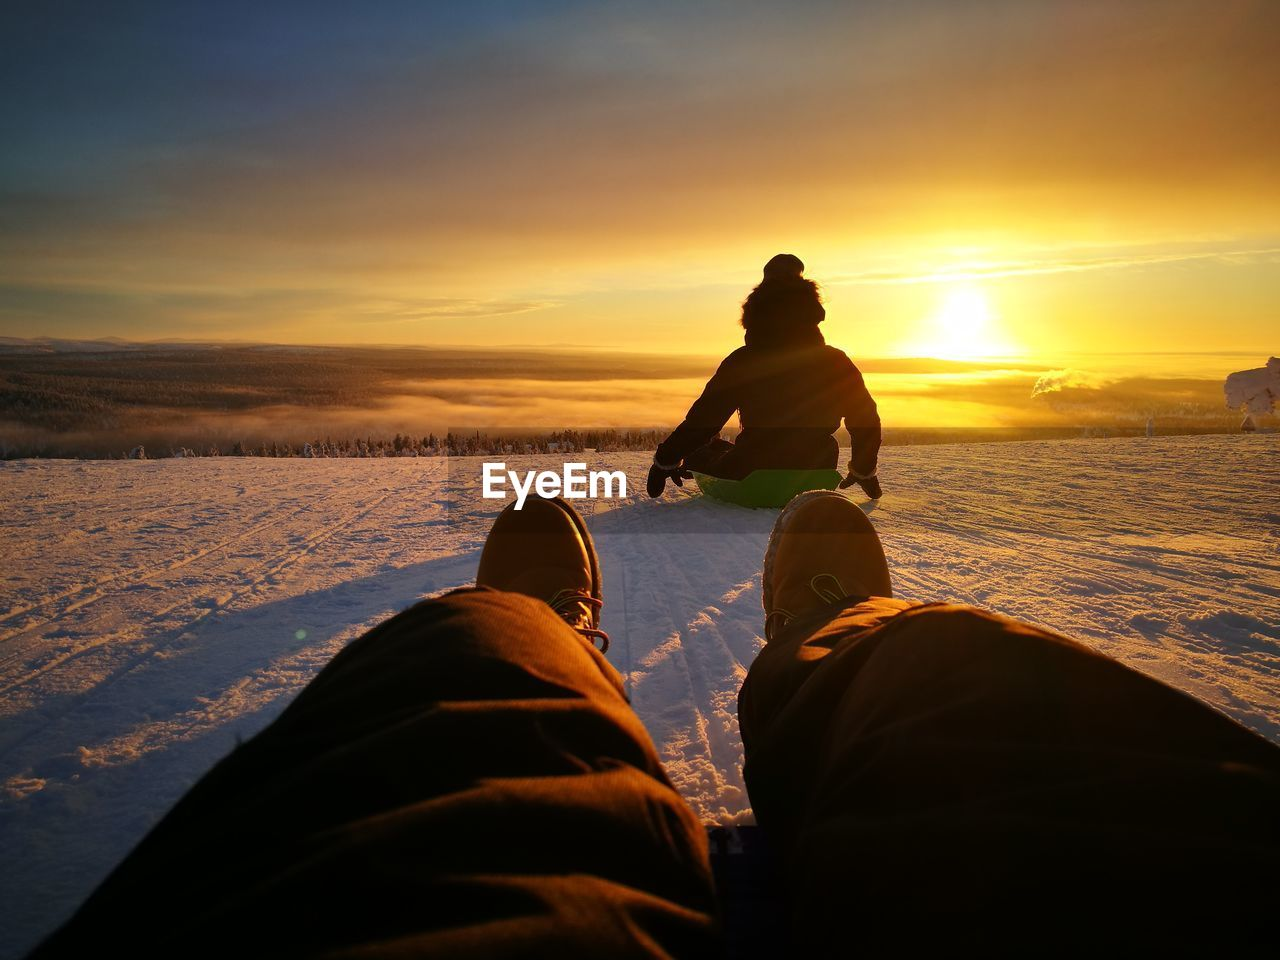 Friends tobogganing on snow covered hill against orange sky